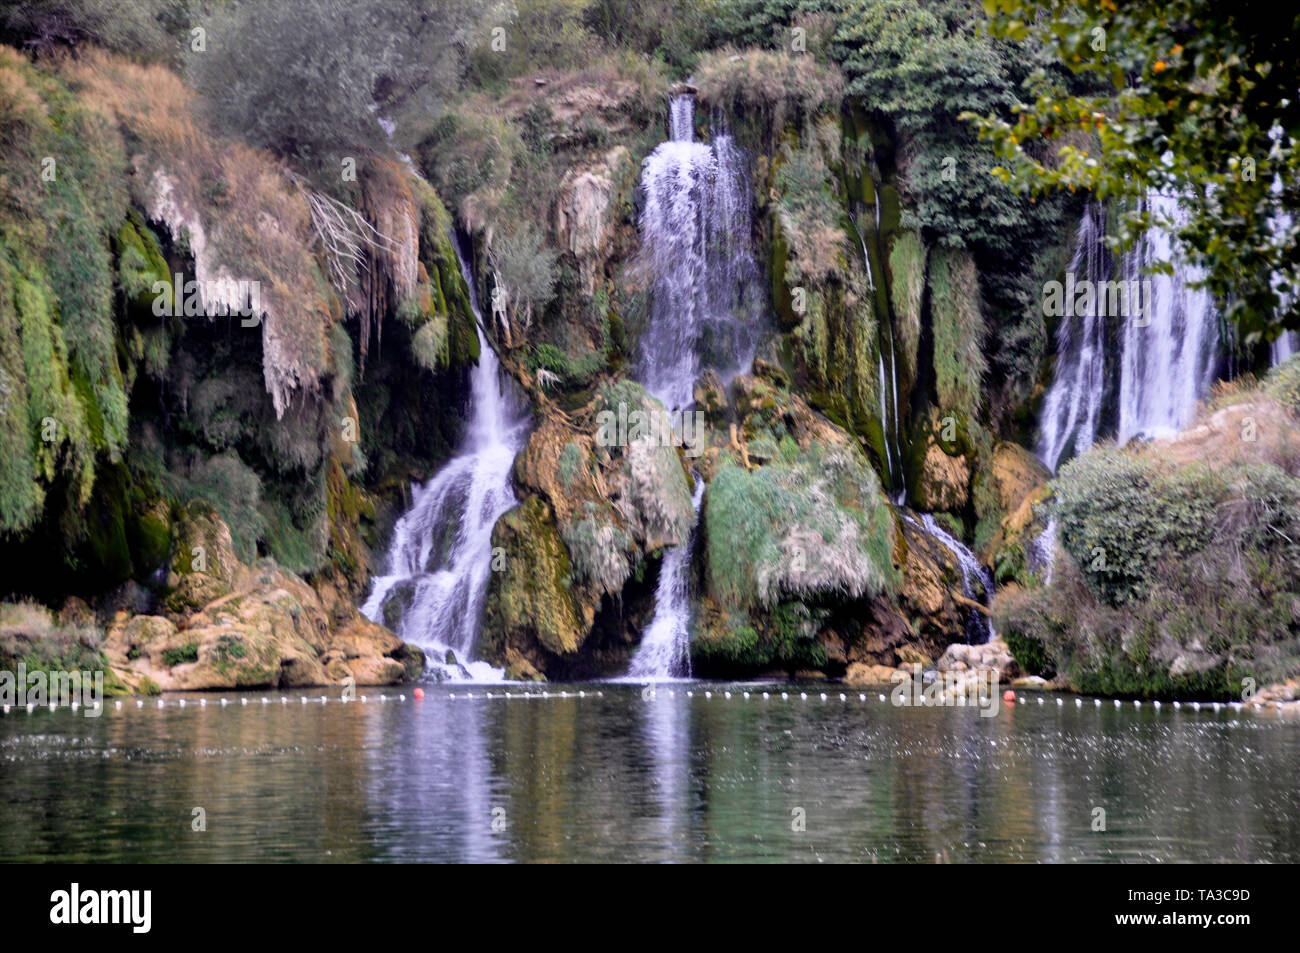 Beautiful Kravica waterfall in Bosnia and Herzegovina - popular swimming and picnic area for tourists - Stock Image